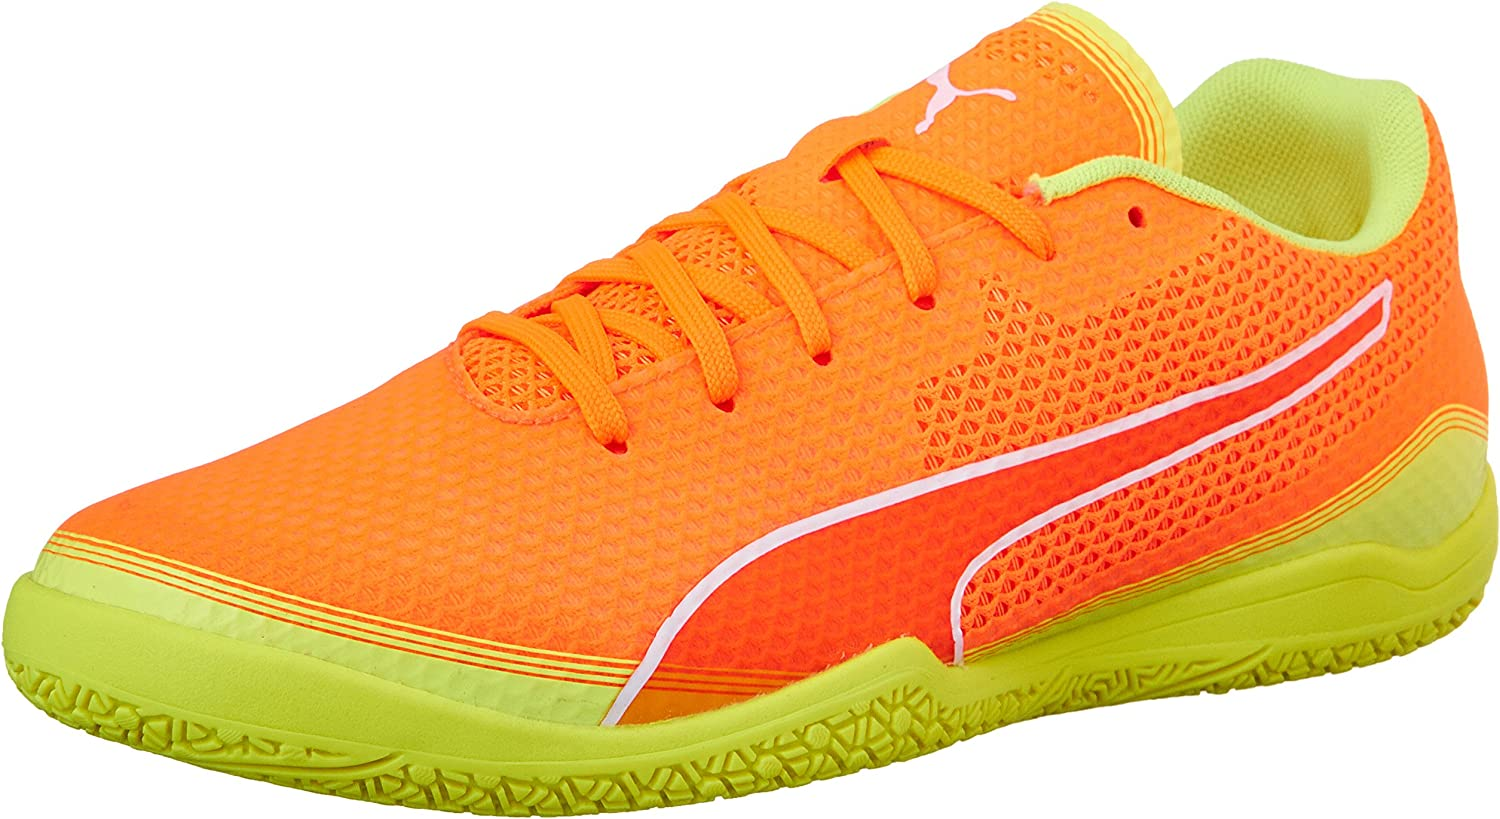 PUMA Men's Invicto Fresh Soccer schuhe, Shocking Orange Weiß Safety Gelb, 10.5 M US B01A8ALIOS  Am praktischsten